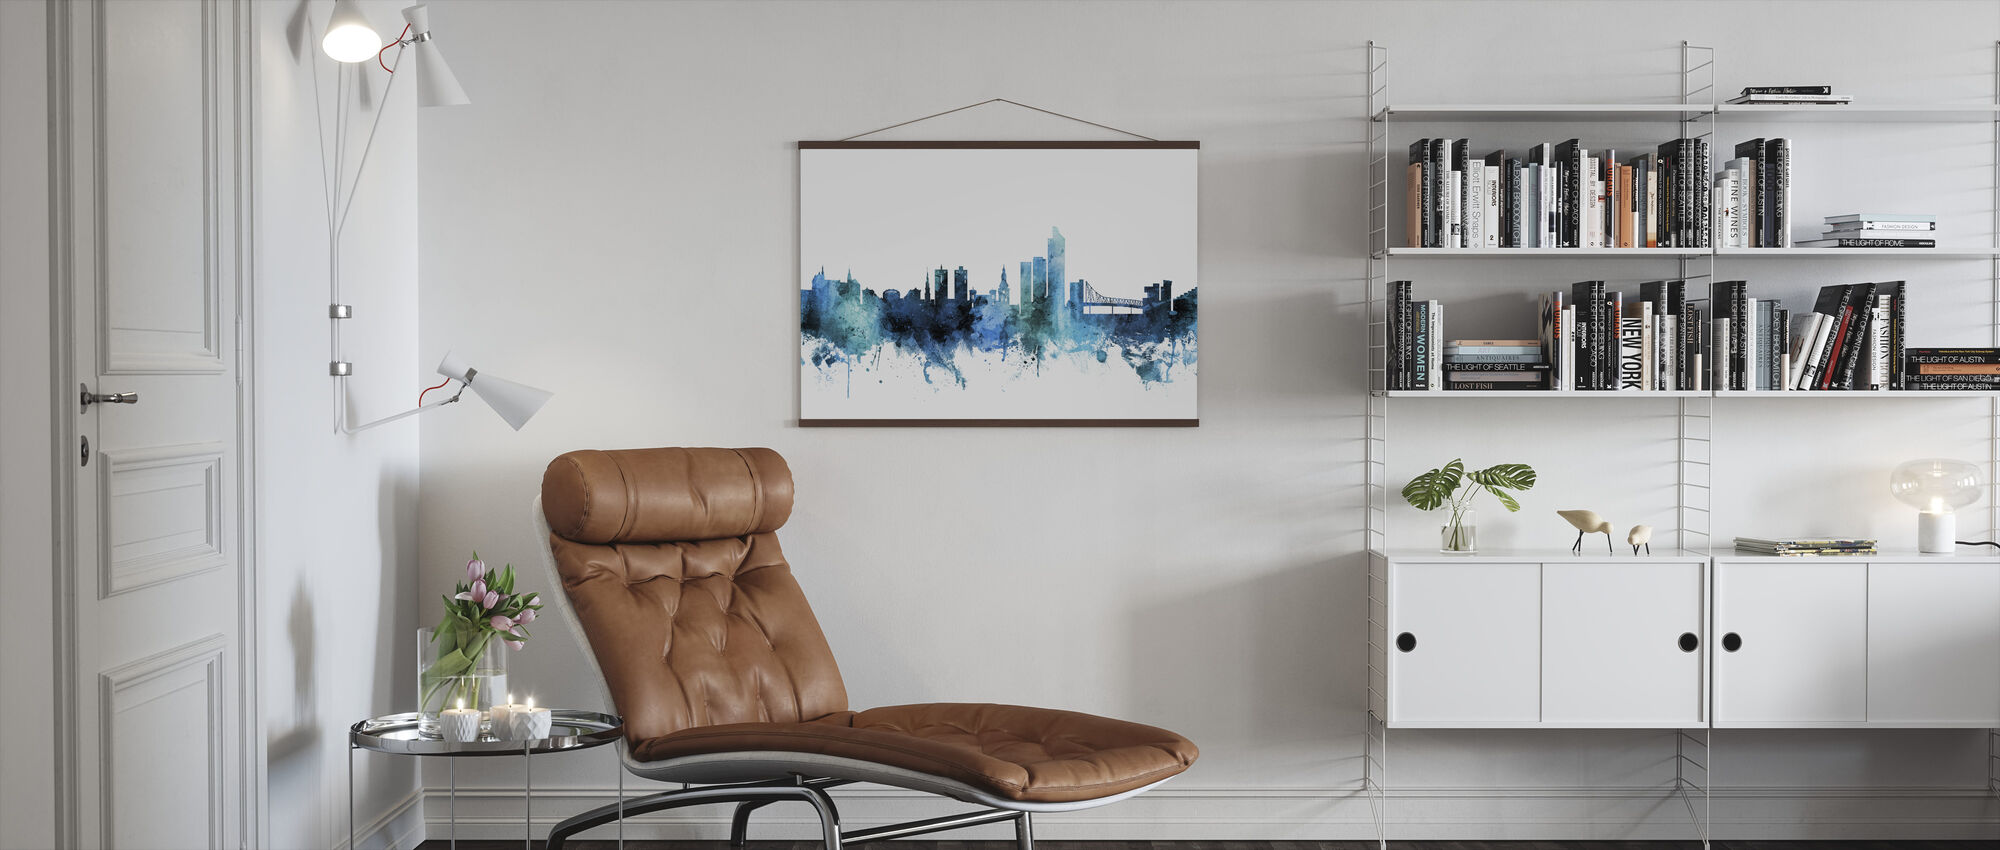 Oslo Norges Skyline - Plakat - Stue